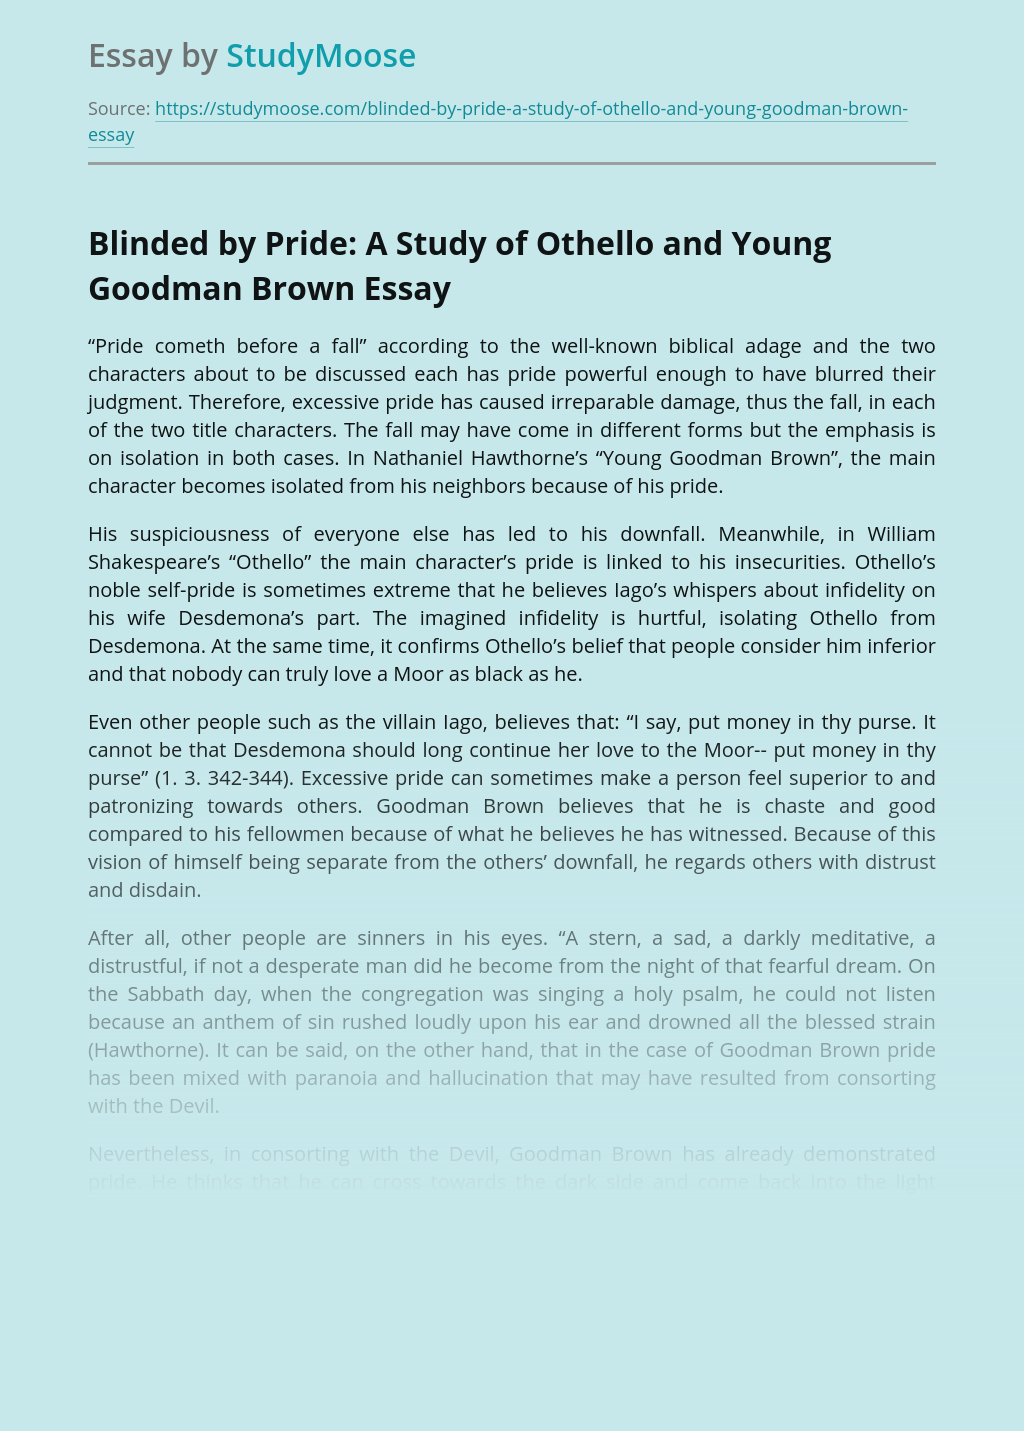 Blinded by Pride:  A Study of Othello and Young Goodman Brown